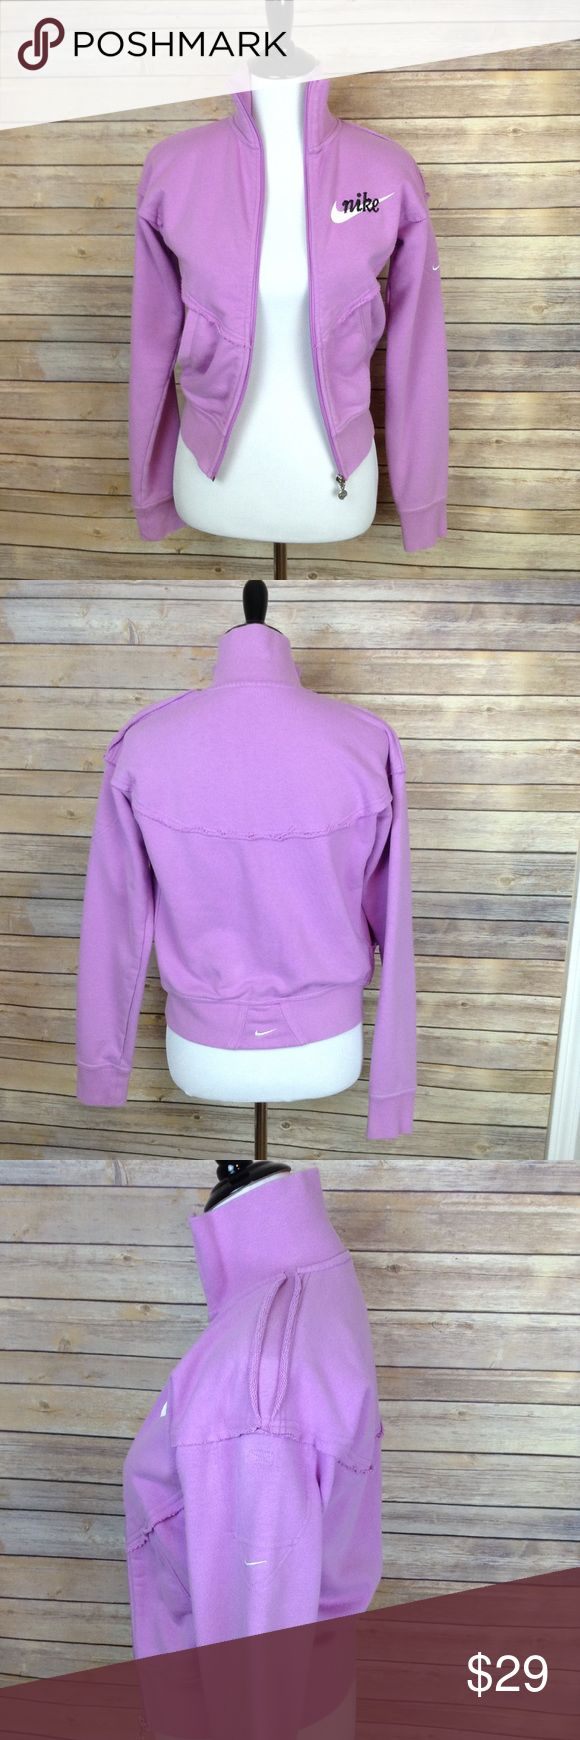 """Nike purple zip up jacket This plum colored Nike jacket certainly has a vintage feel to it! Preloved, just normal wash and wear, no stains or flaws noted, no fraying if sleeve cuffs. Terri cloth lining. Embroidered Nike logo. Swoosh logo on back waistband and left shoulder.  Split shoulder seam on left side. Front & back yoke.  This is more of a plum color according to chart.  APPROX FLAT MEASUREMENTS  21"""" ↕️ 17"""" ↔️ armpits 22"""" sleeves.  14"""" ↔️ at waistband  It says 4-6, I believe it's…"""